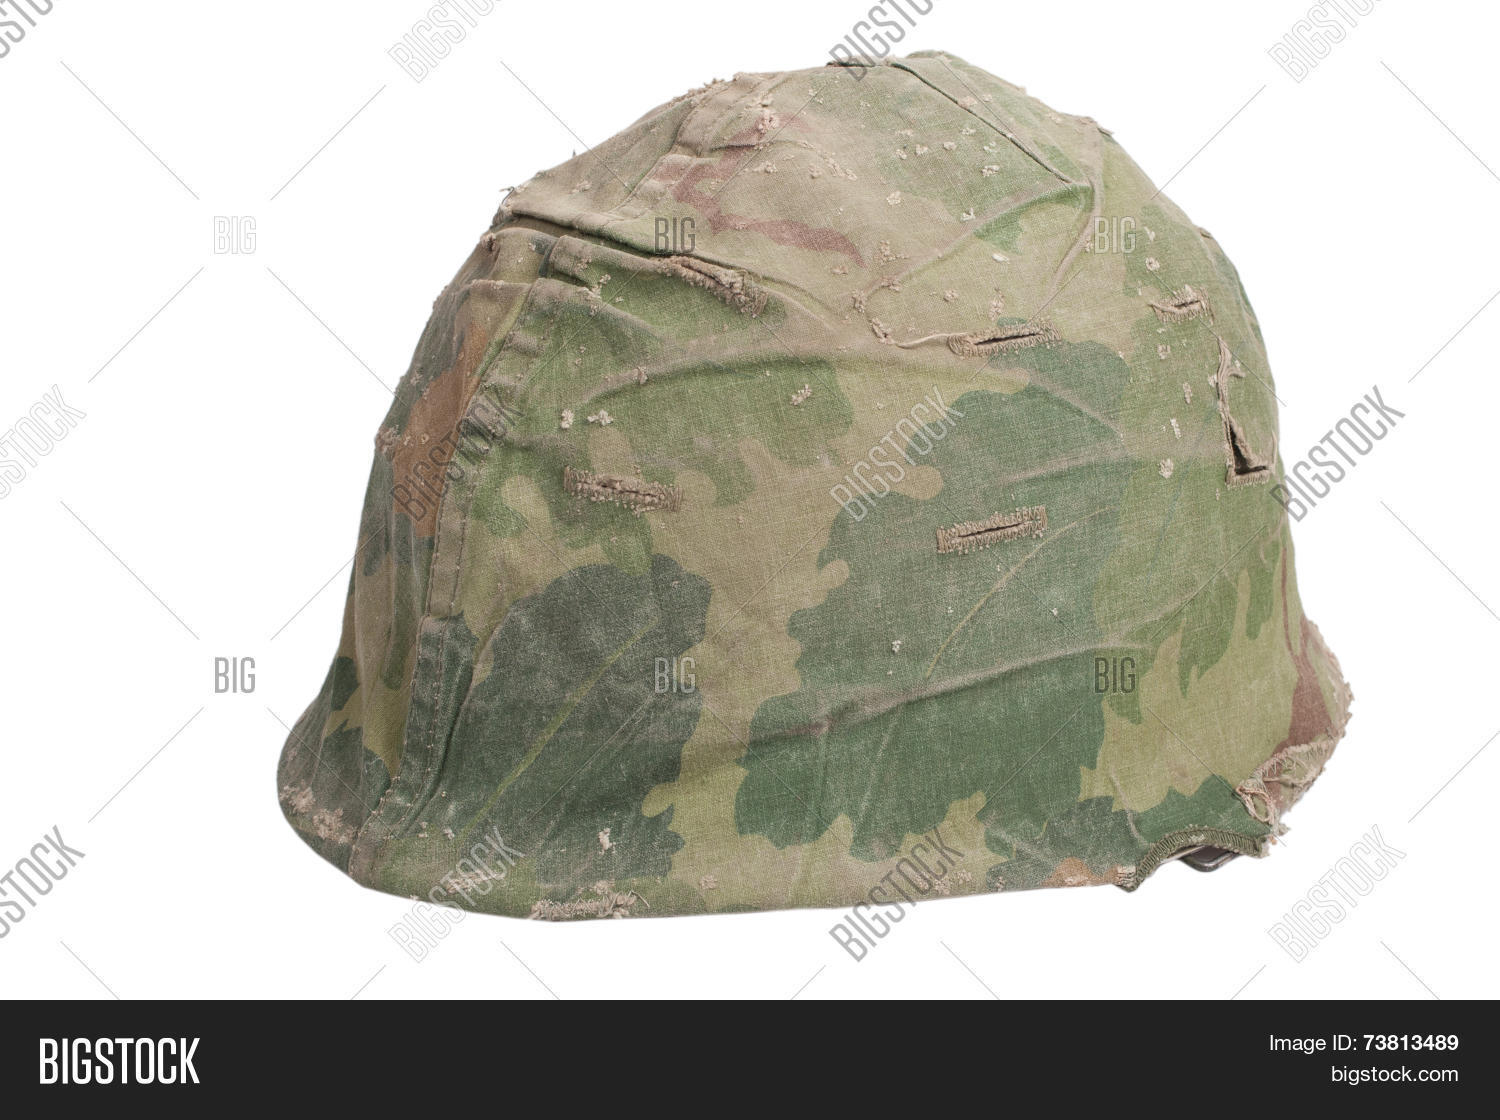 465f14a8 Us Army M1 Helmet With Mitchell Pattern Camouflage Cover Vietnam War Period